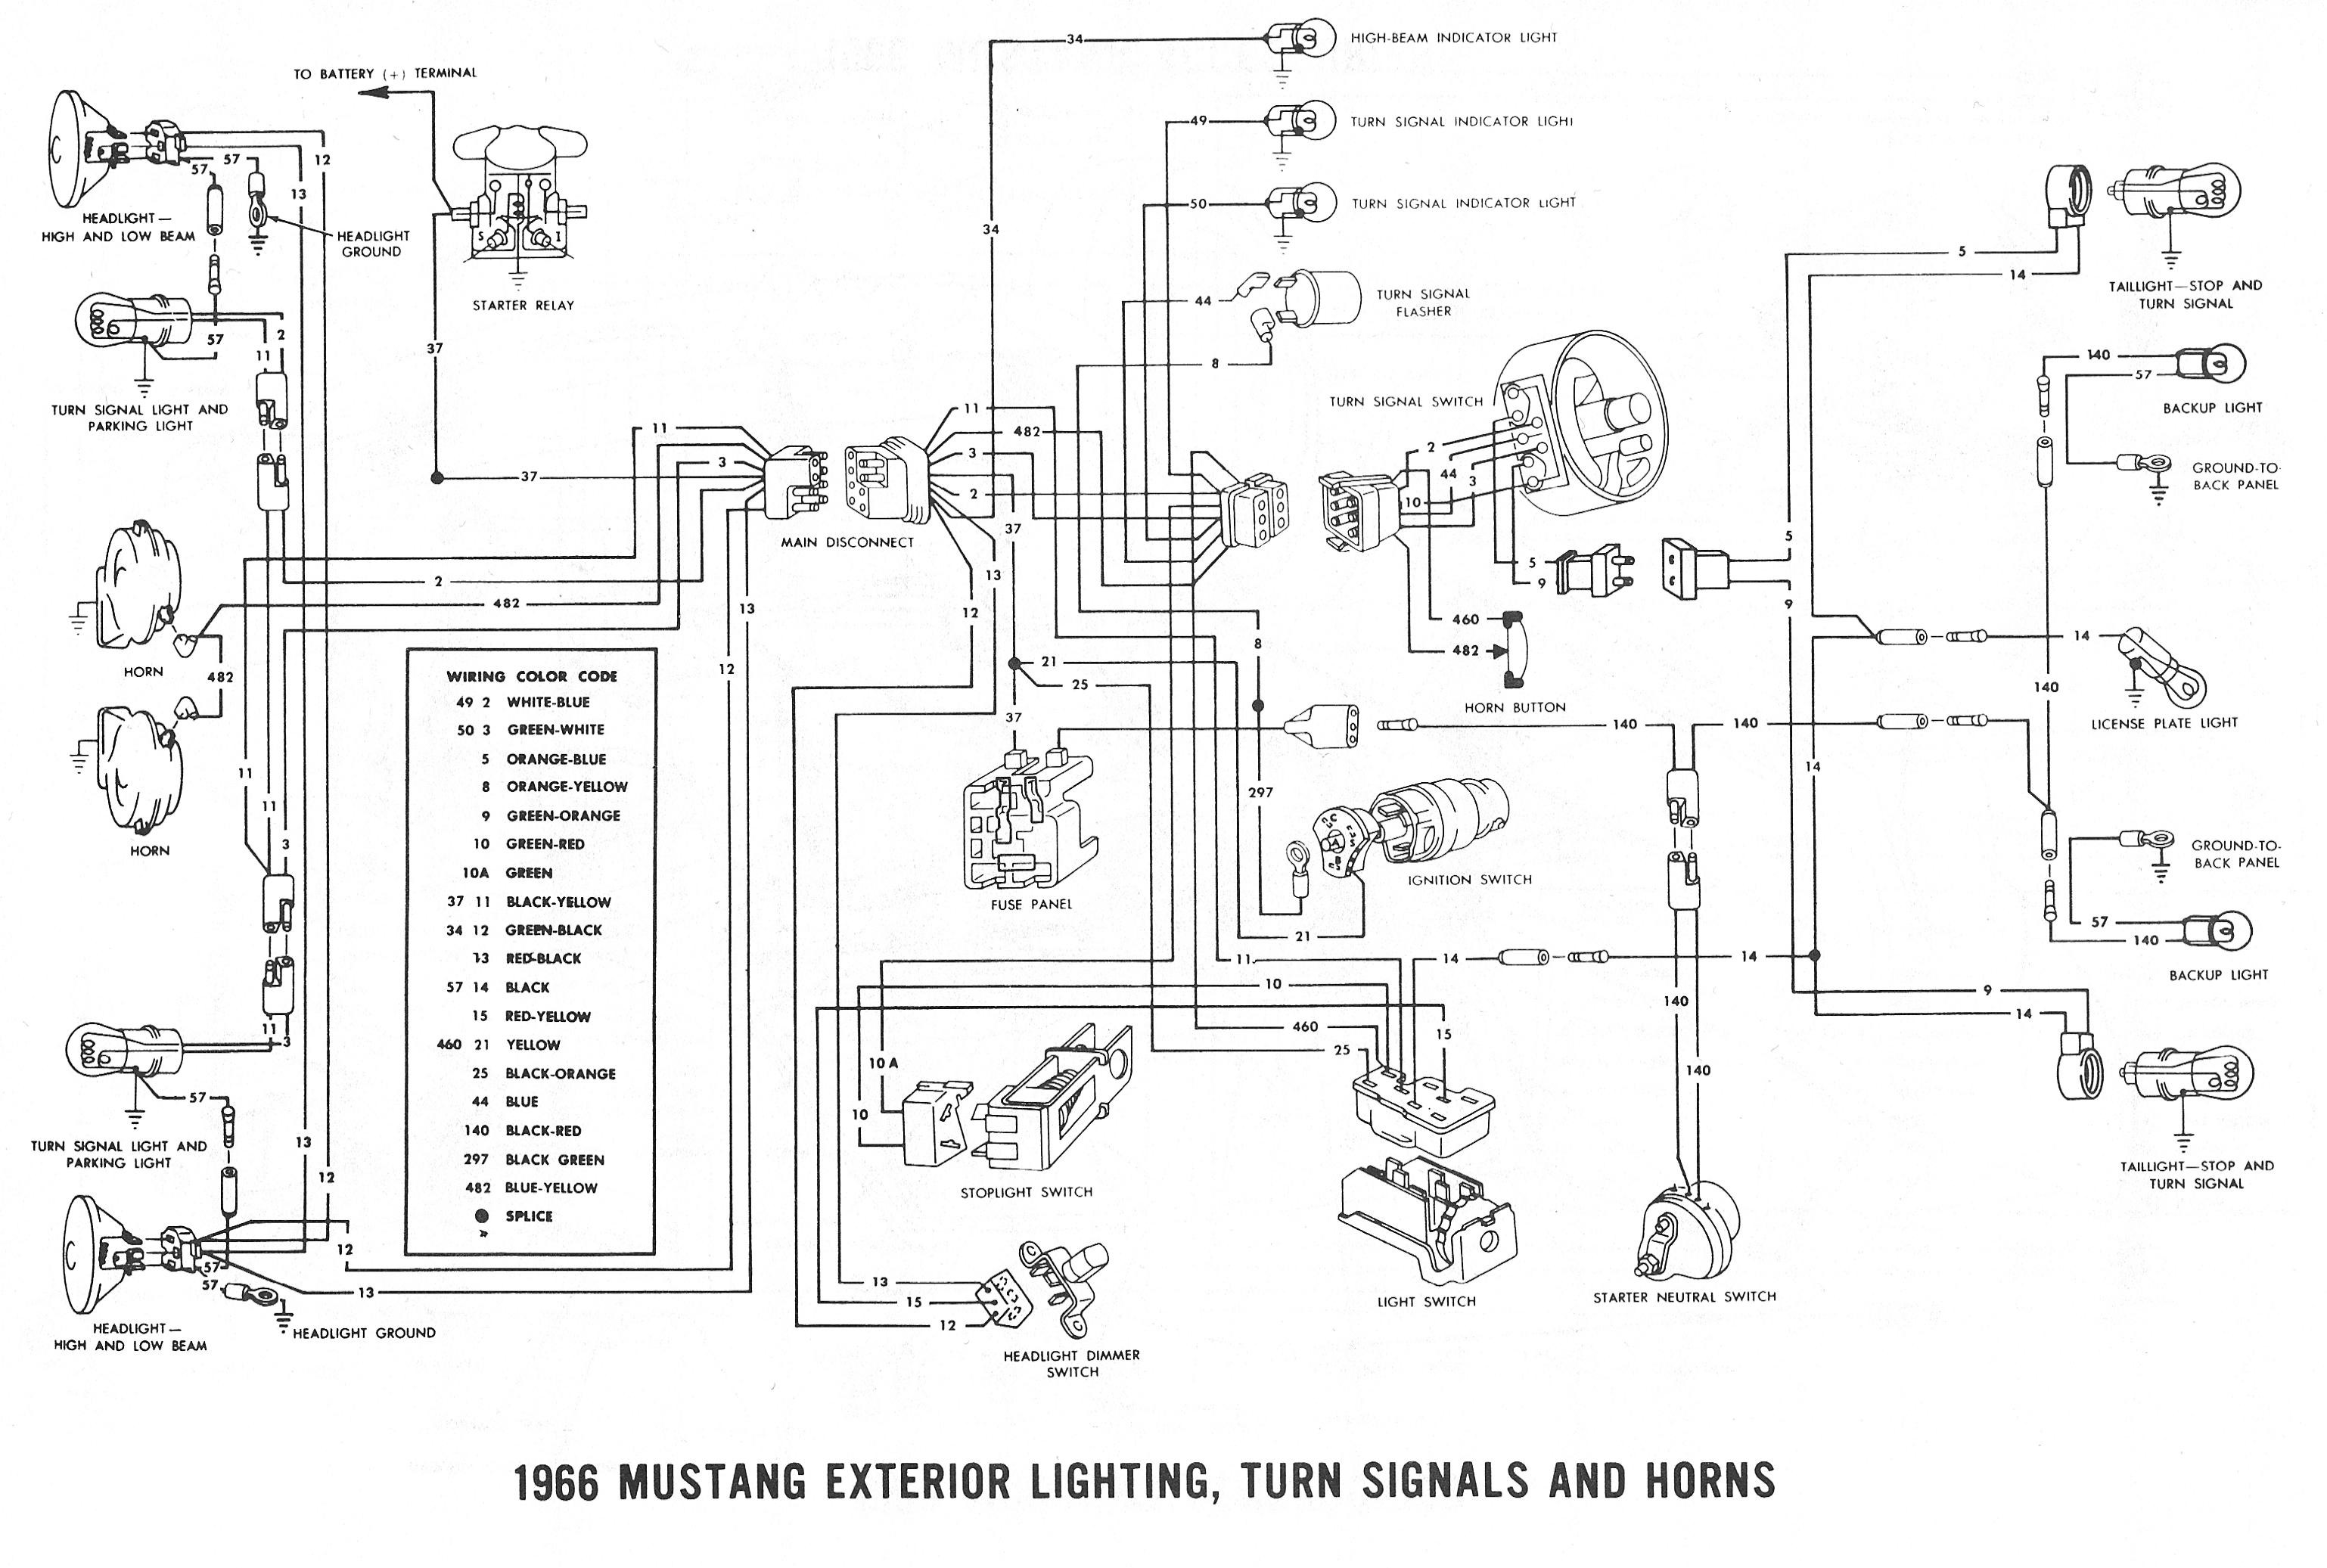 1998 ford Mustang Wiring Diagram 1968 ford Ranger solenoid Wiring Wiring Data Of 1998 ford Mustang Wiring Diagram